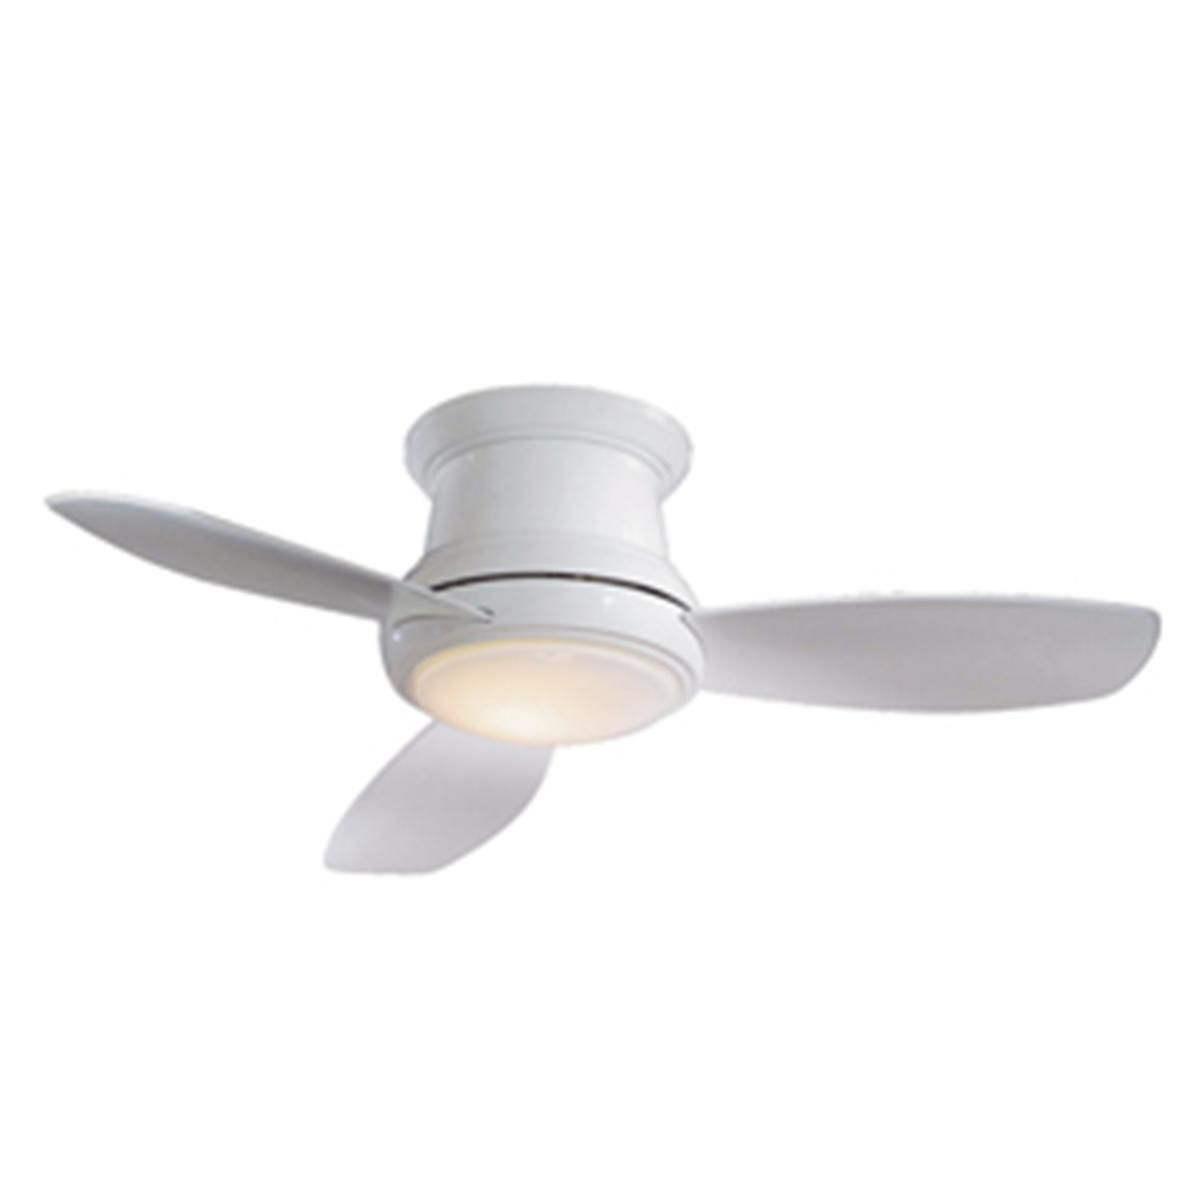 44 Low Ceiling Scoop Fan For The Upstairs Bedrooms With